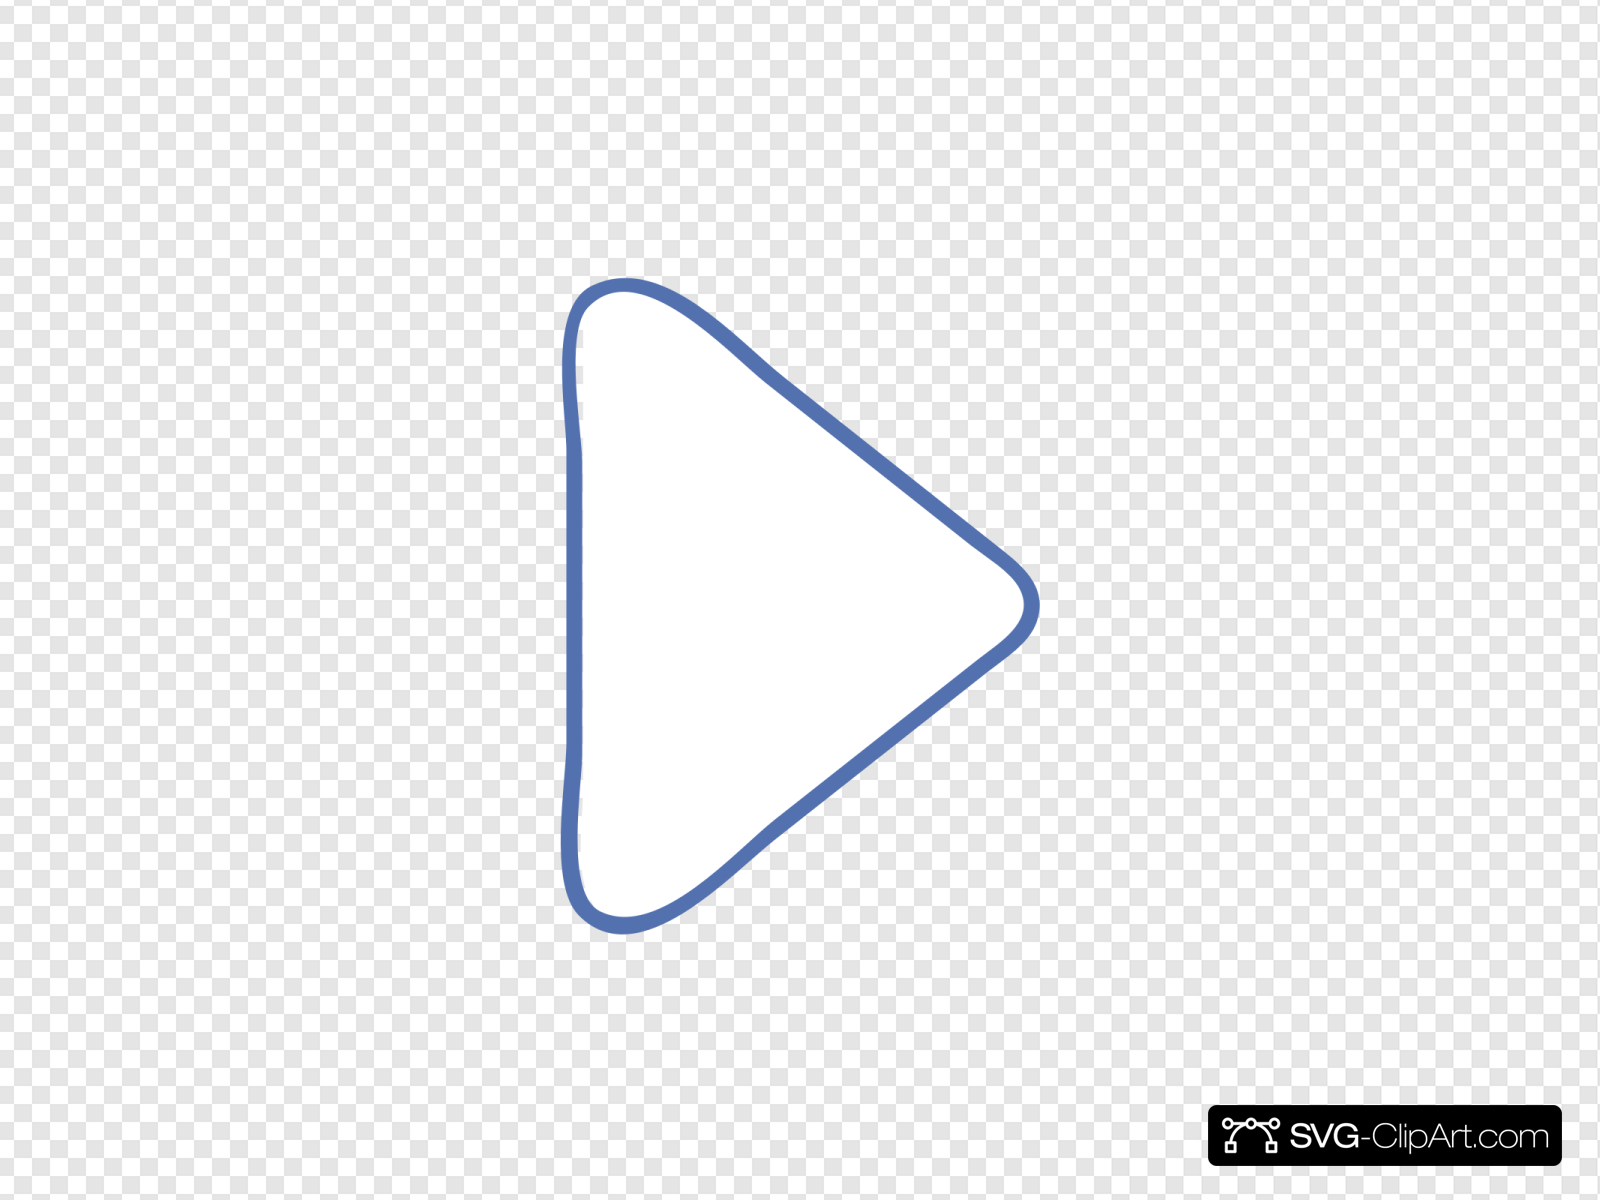 Play Triangle Clip art, Icon and SVG.